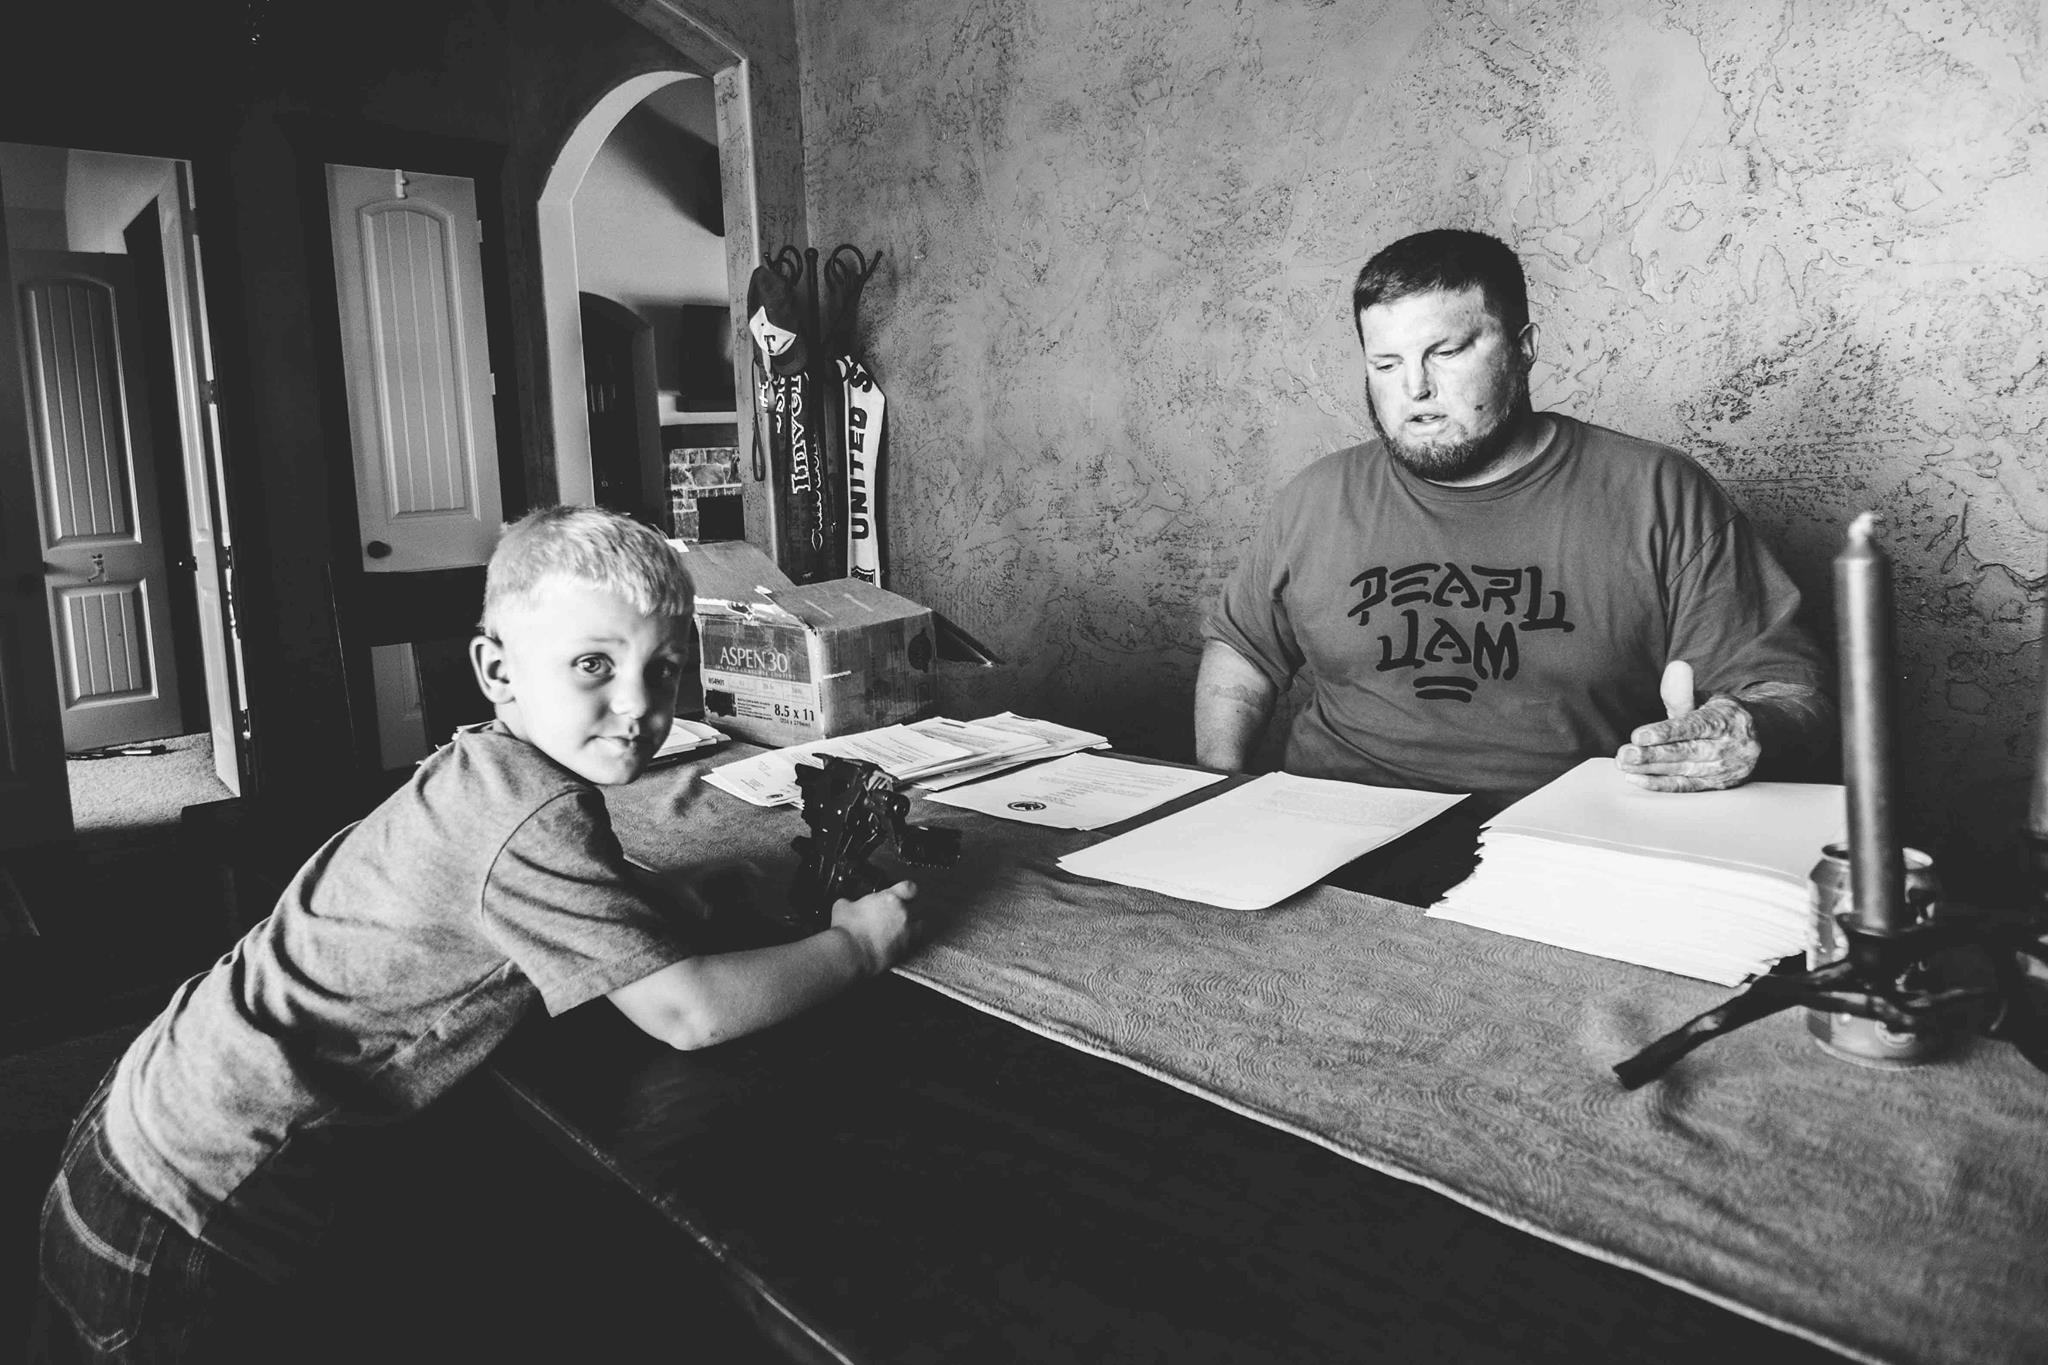 Joe with son King and a mountain of VA paperwork.